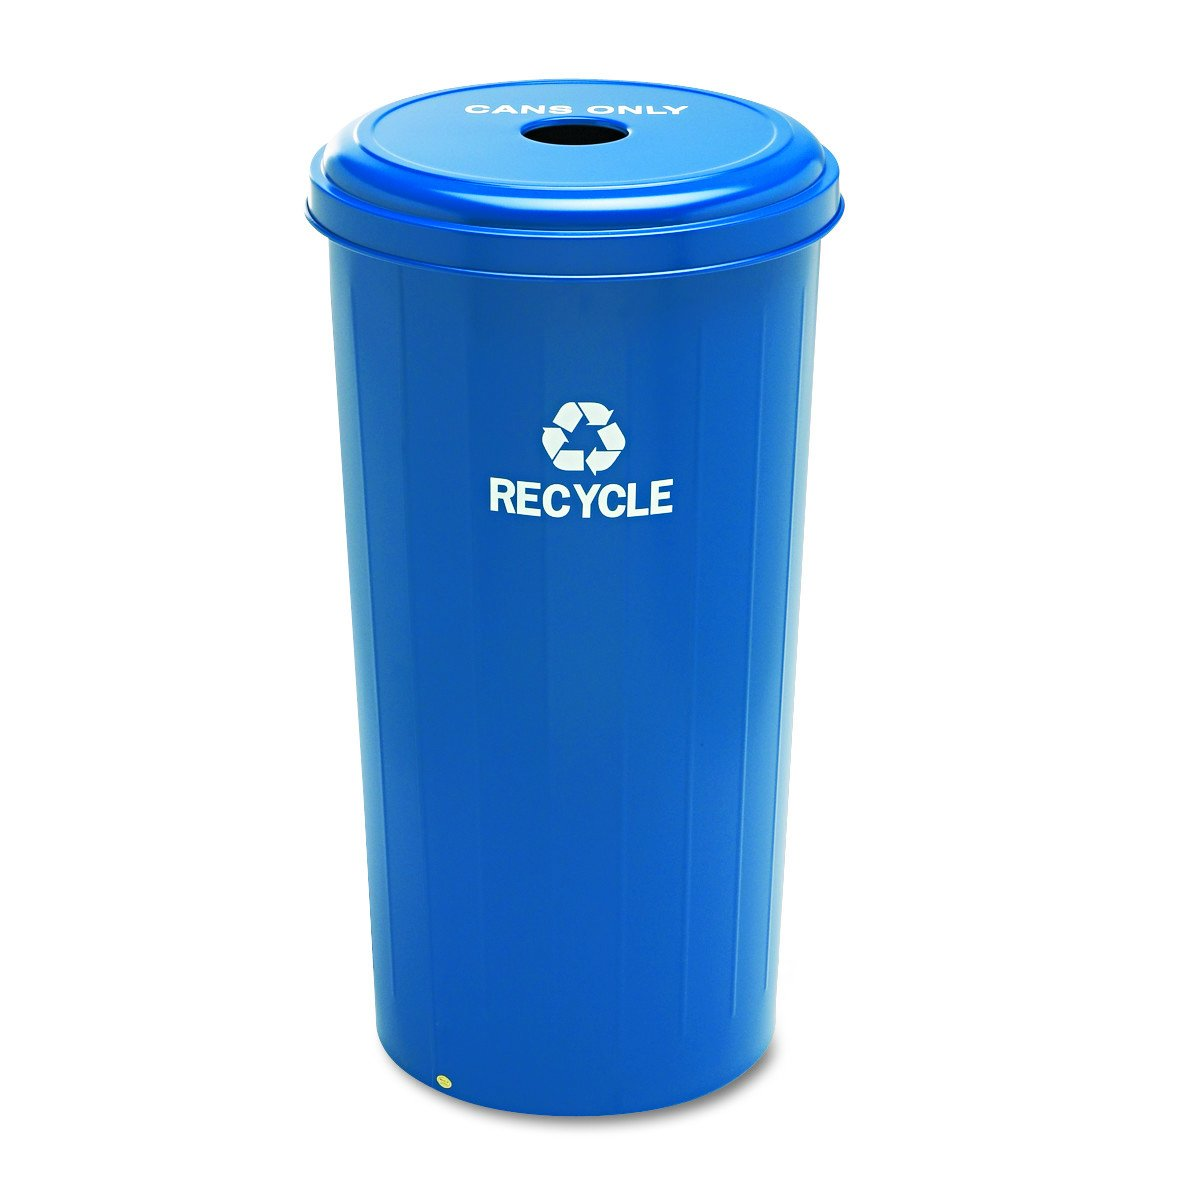 Safco Products 9632BU Tall Round Recycling Trash Can, 20-Gallon, Blue